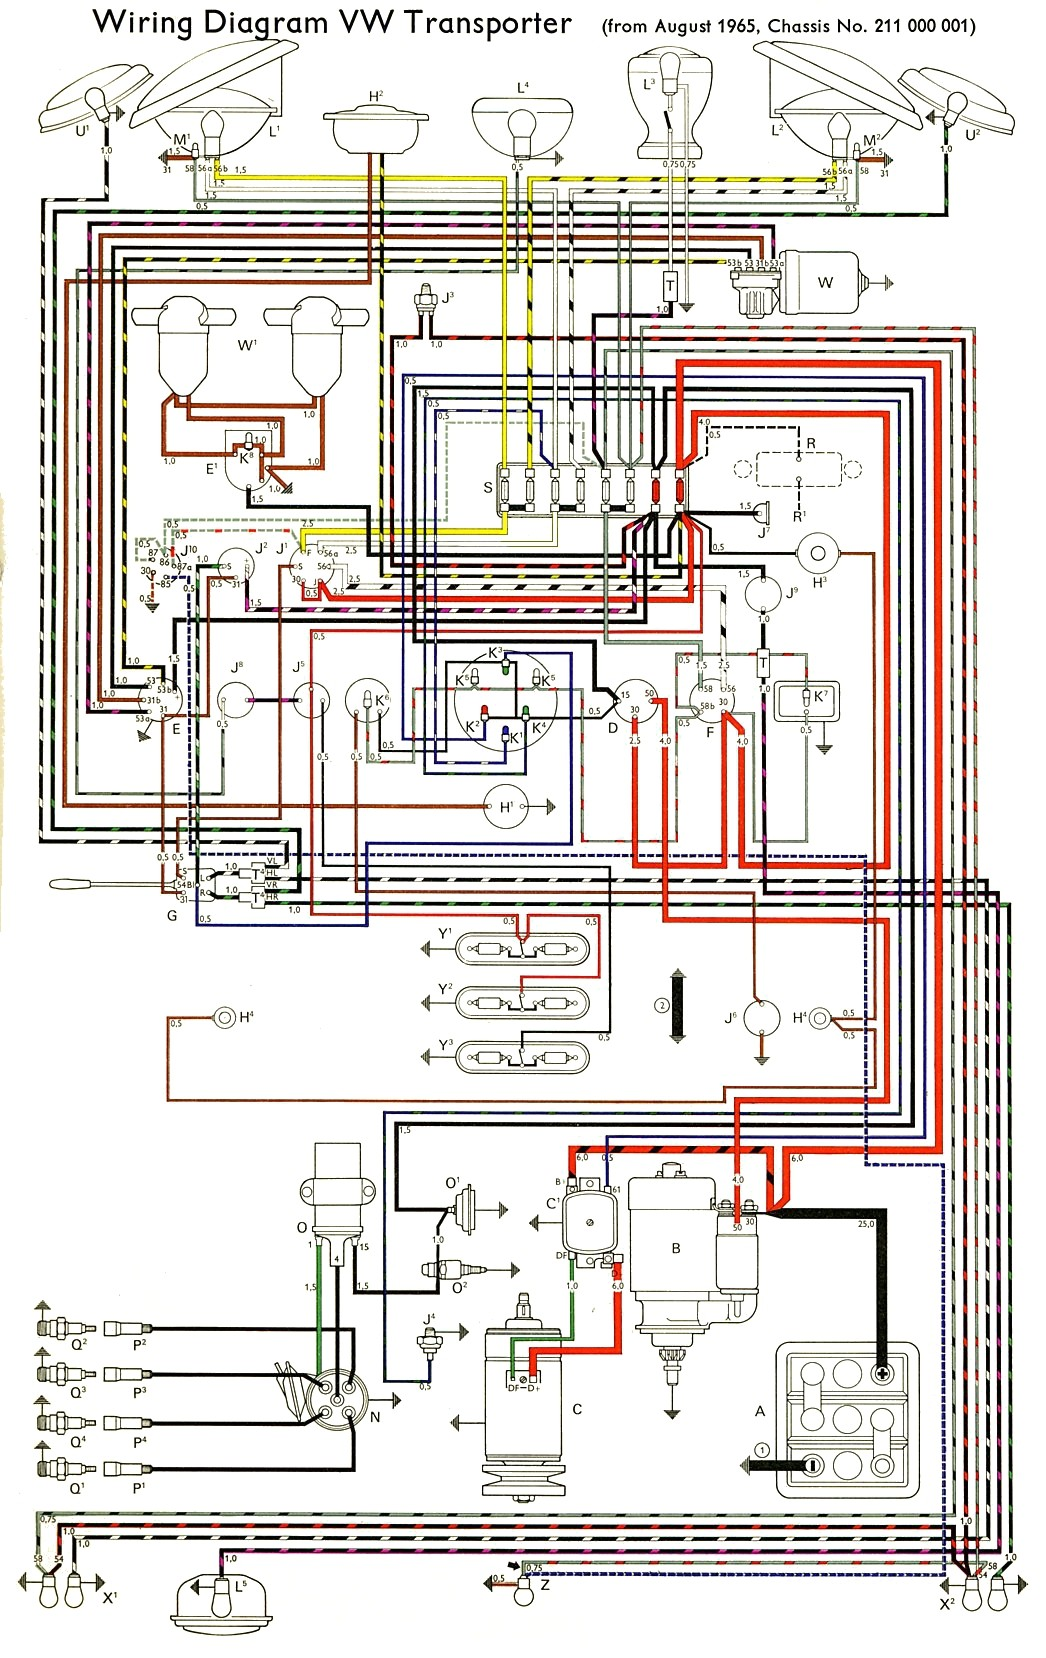 Van Hool Wiring Diagrams Trusted Diagram Bus News U2022 Tool